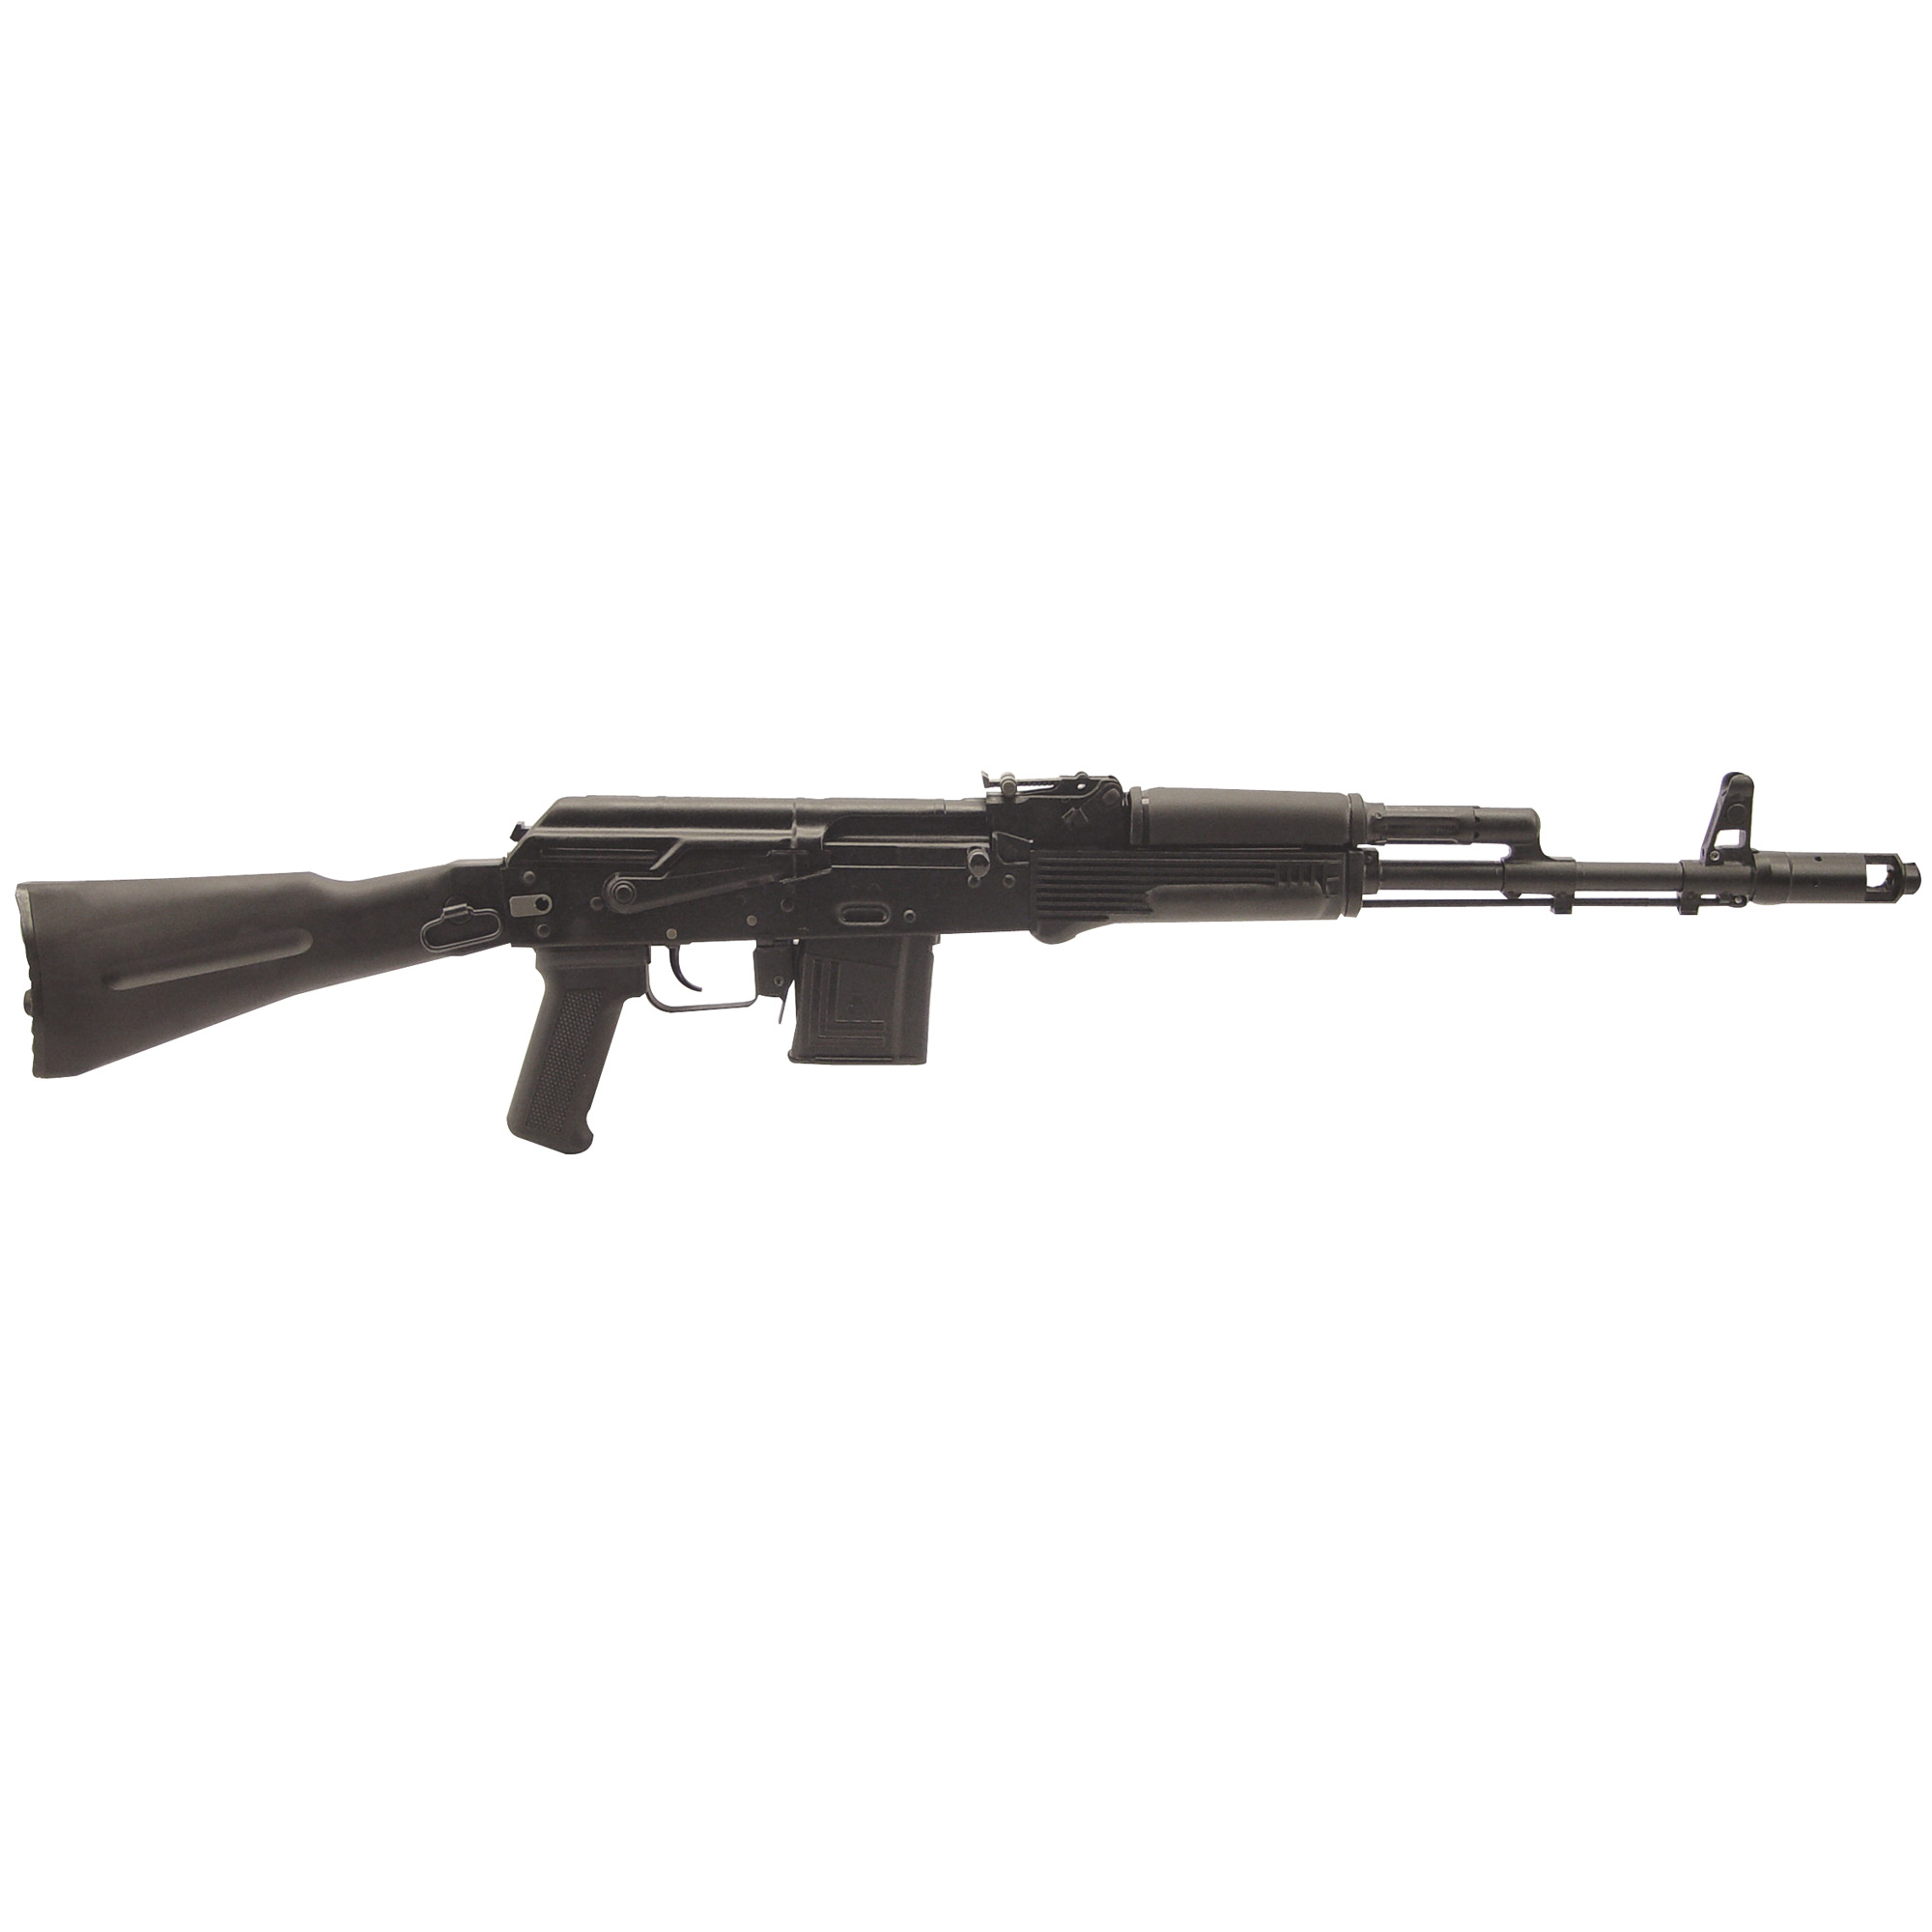 """SLR-106 5.56x45 caliber rifles are top notch"""" Bulgarian made"""" stamped receiver"""" semi-automatic modern sporting rifles remanufactured by Arsenal"""" Inc. in Las Vegas"""" Nevada."""